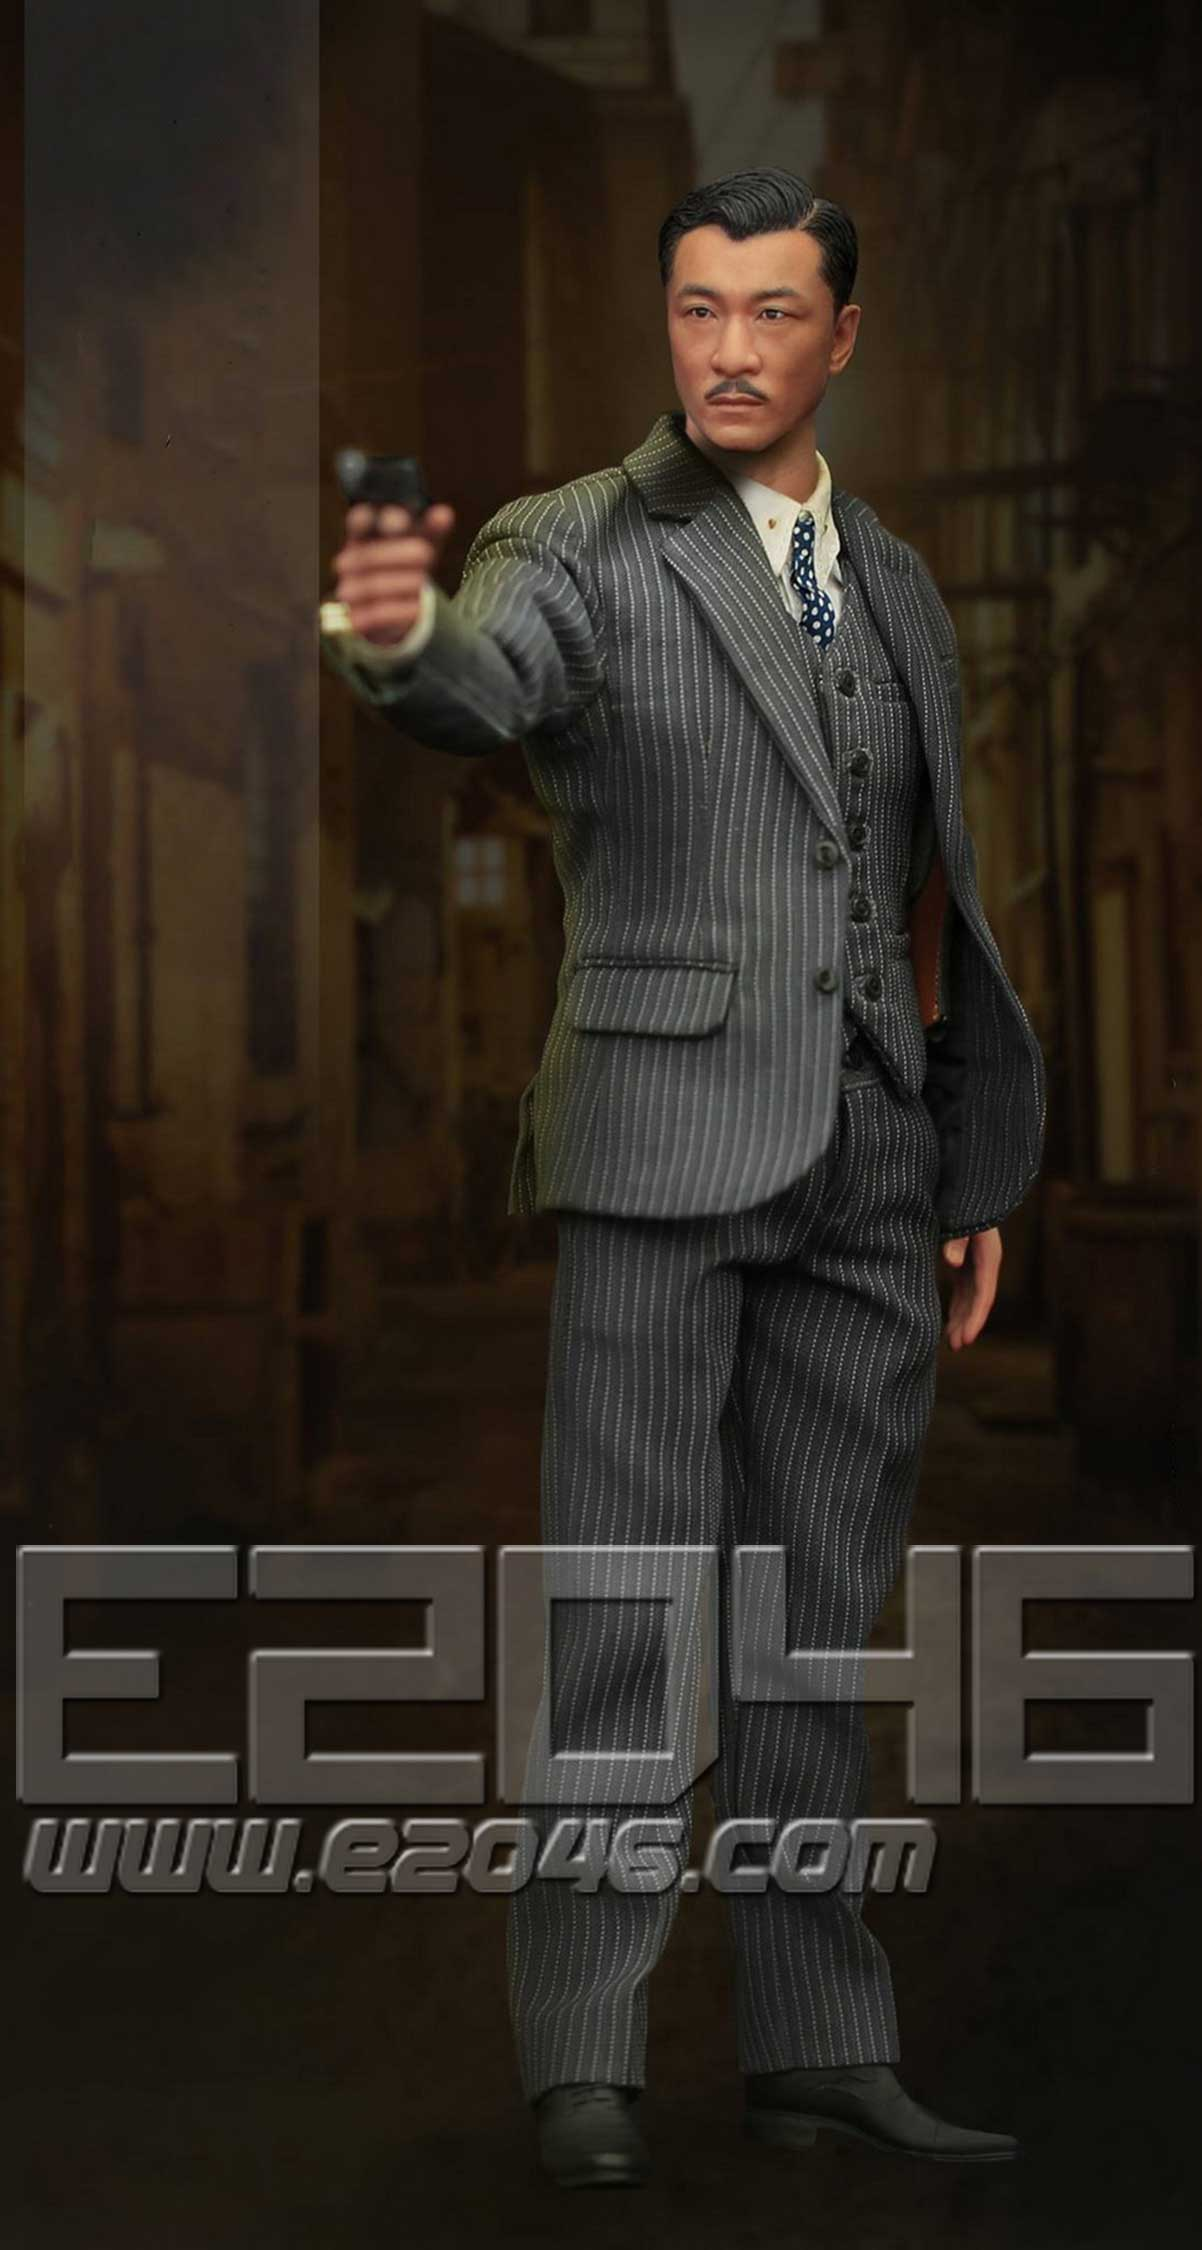 Undercover Agent (DOLL)